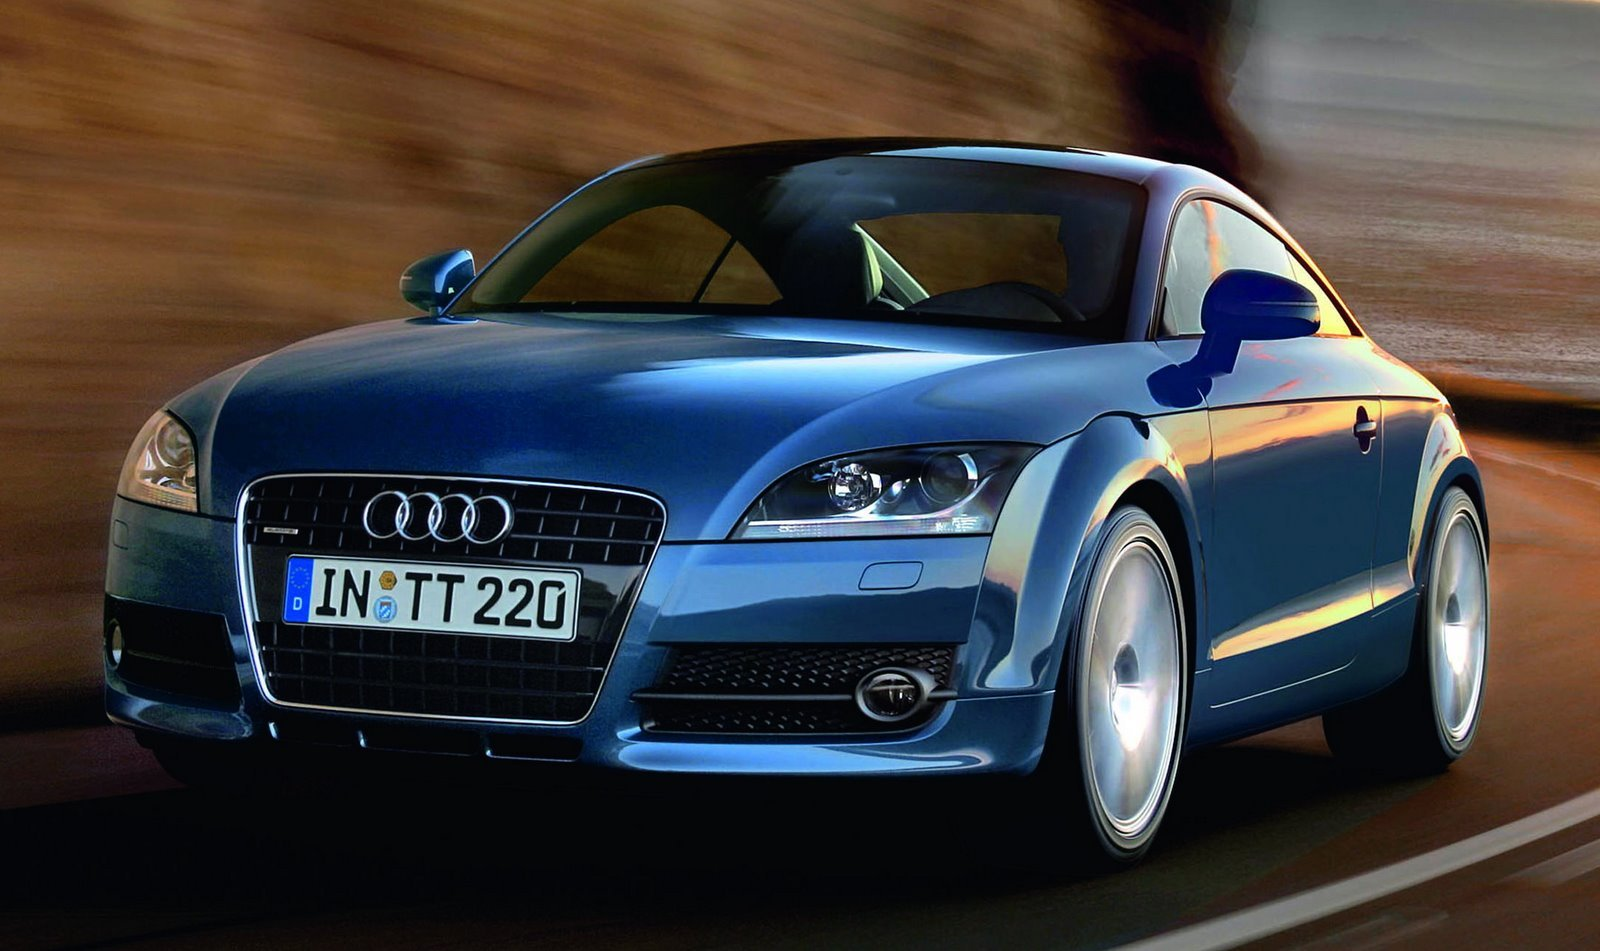 audi tt 2009: review, amazing pictures and images – look at the car